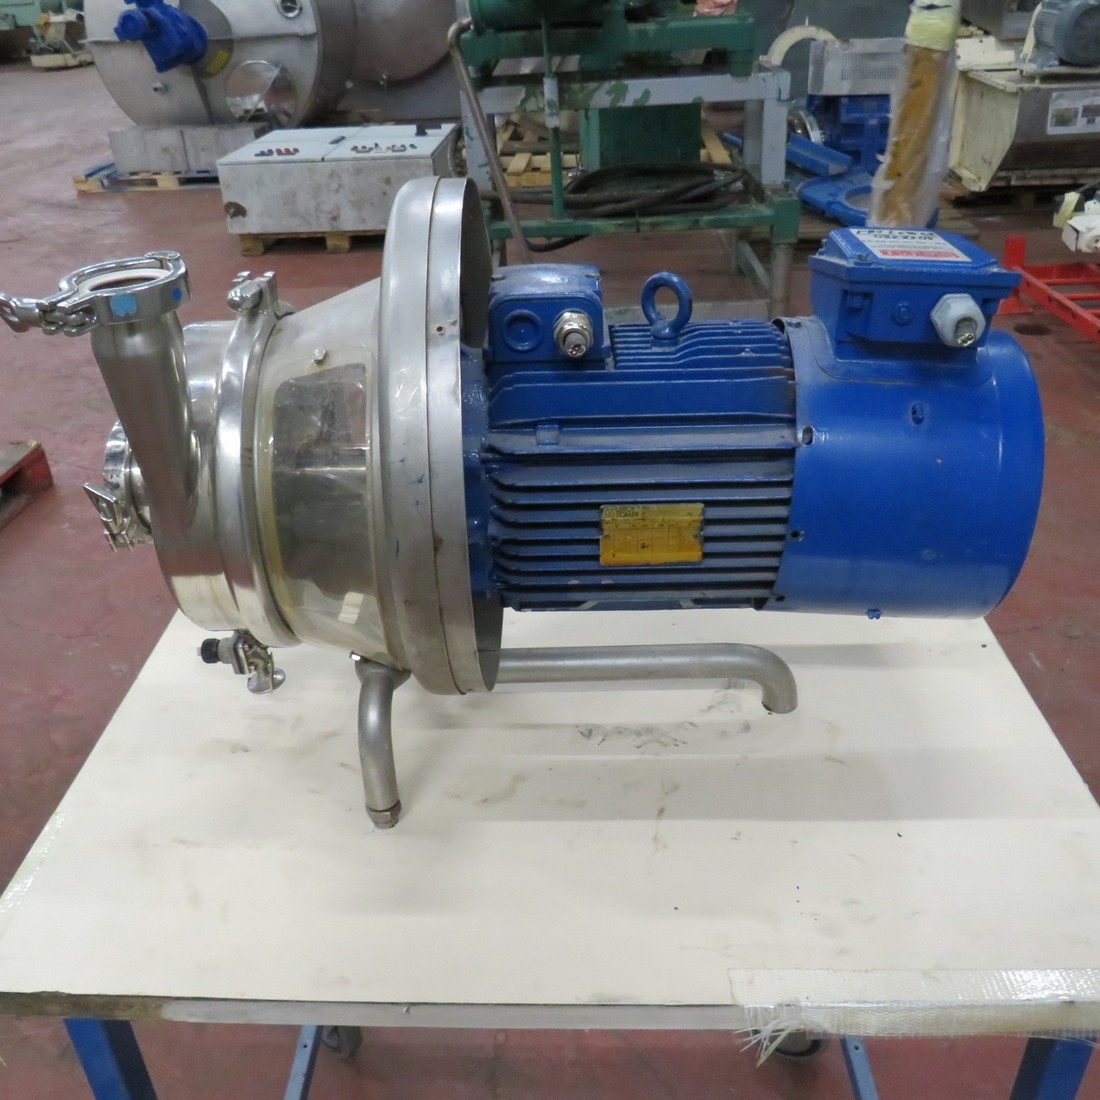 Stainless Steel Inoxpa Centrifugal Pump S 35 F Type